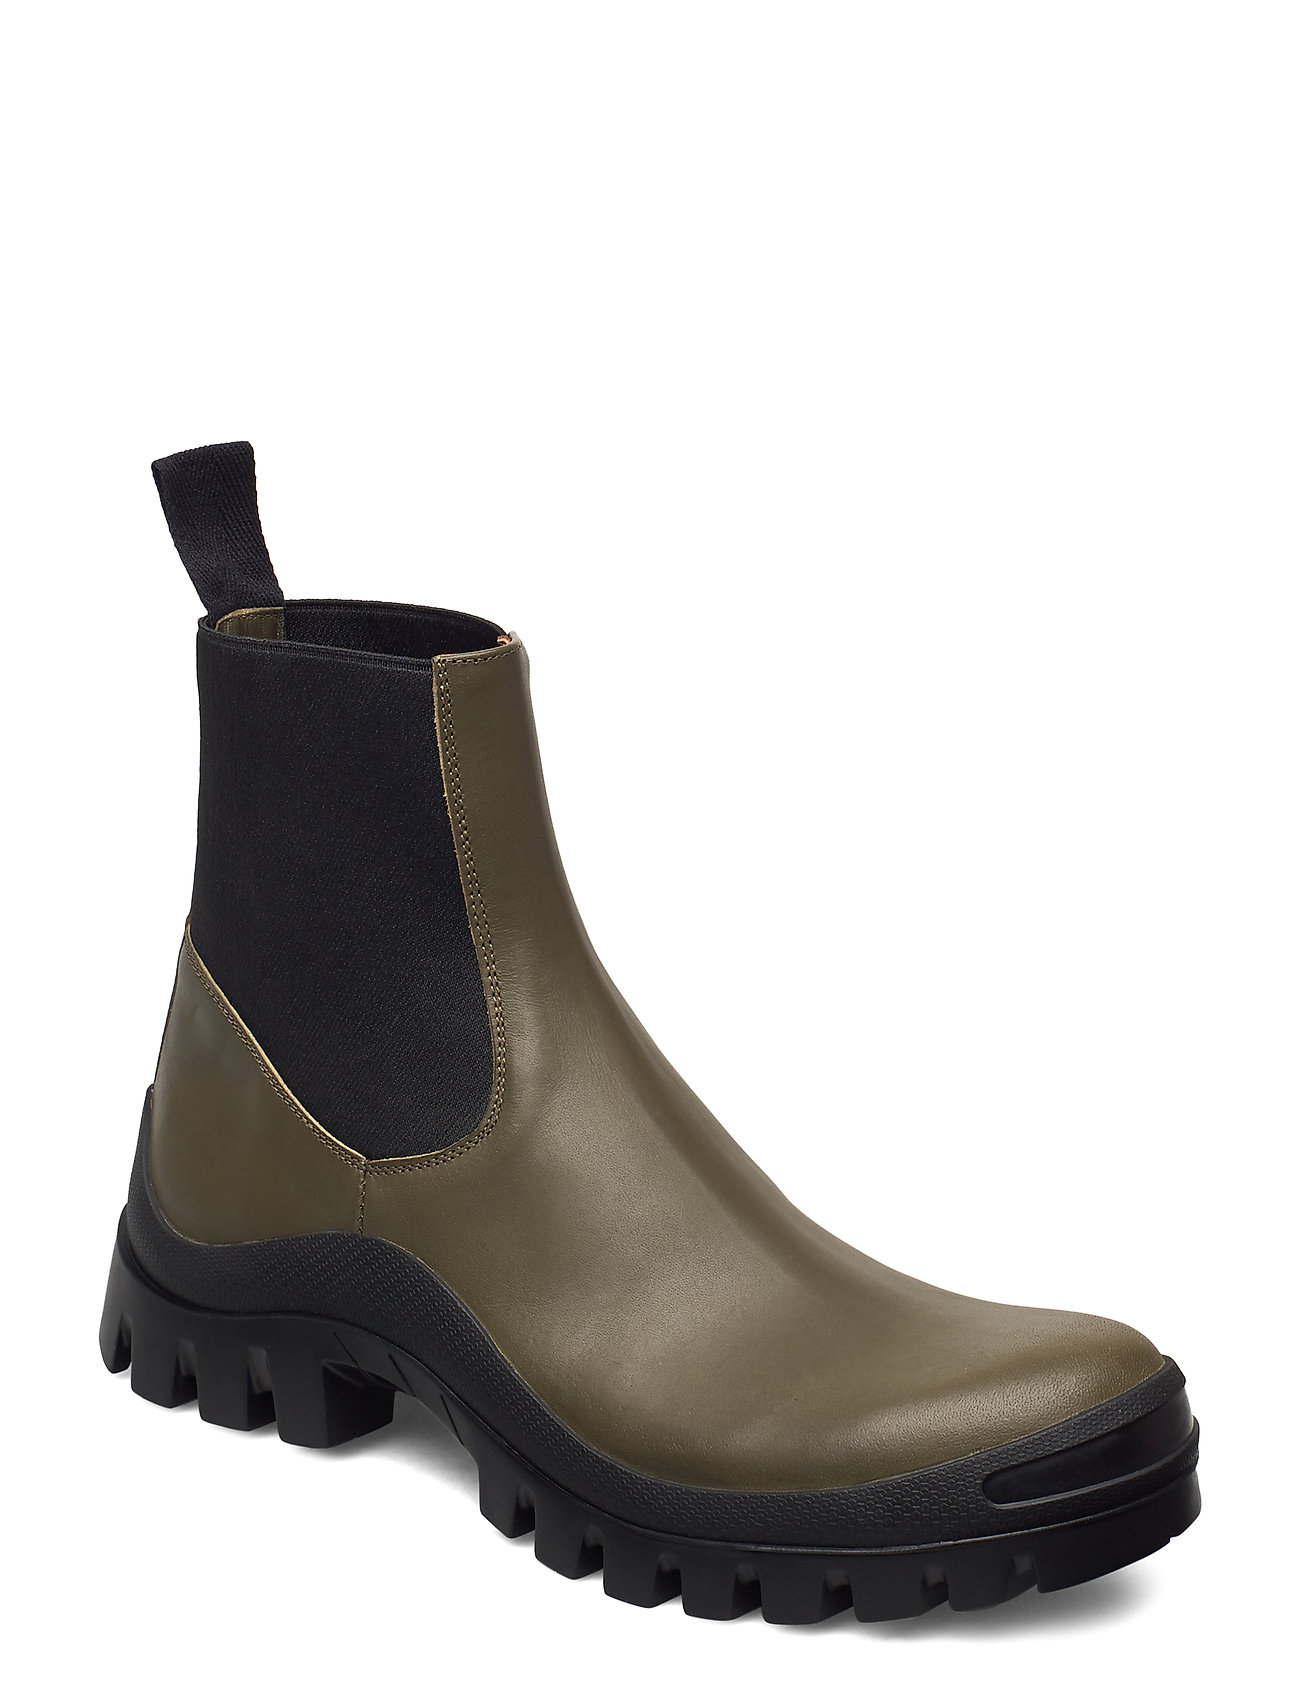 Image of Catania Vacchetta Shoes Boots Ankle Boots Ankle Boot - Flat Grøn ATP Atelier (3445902529)